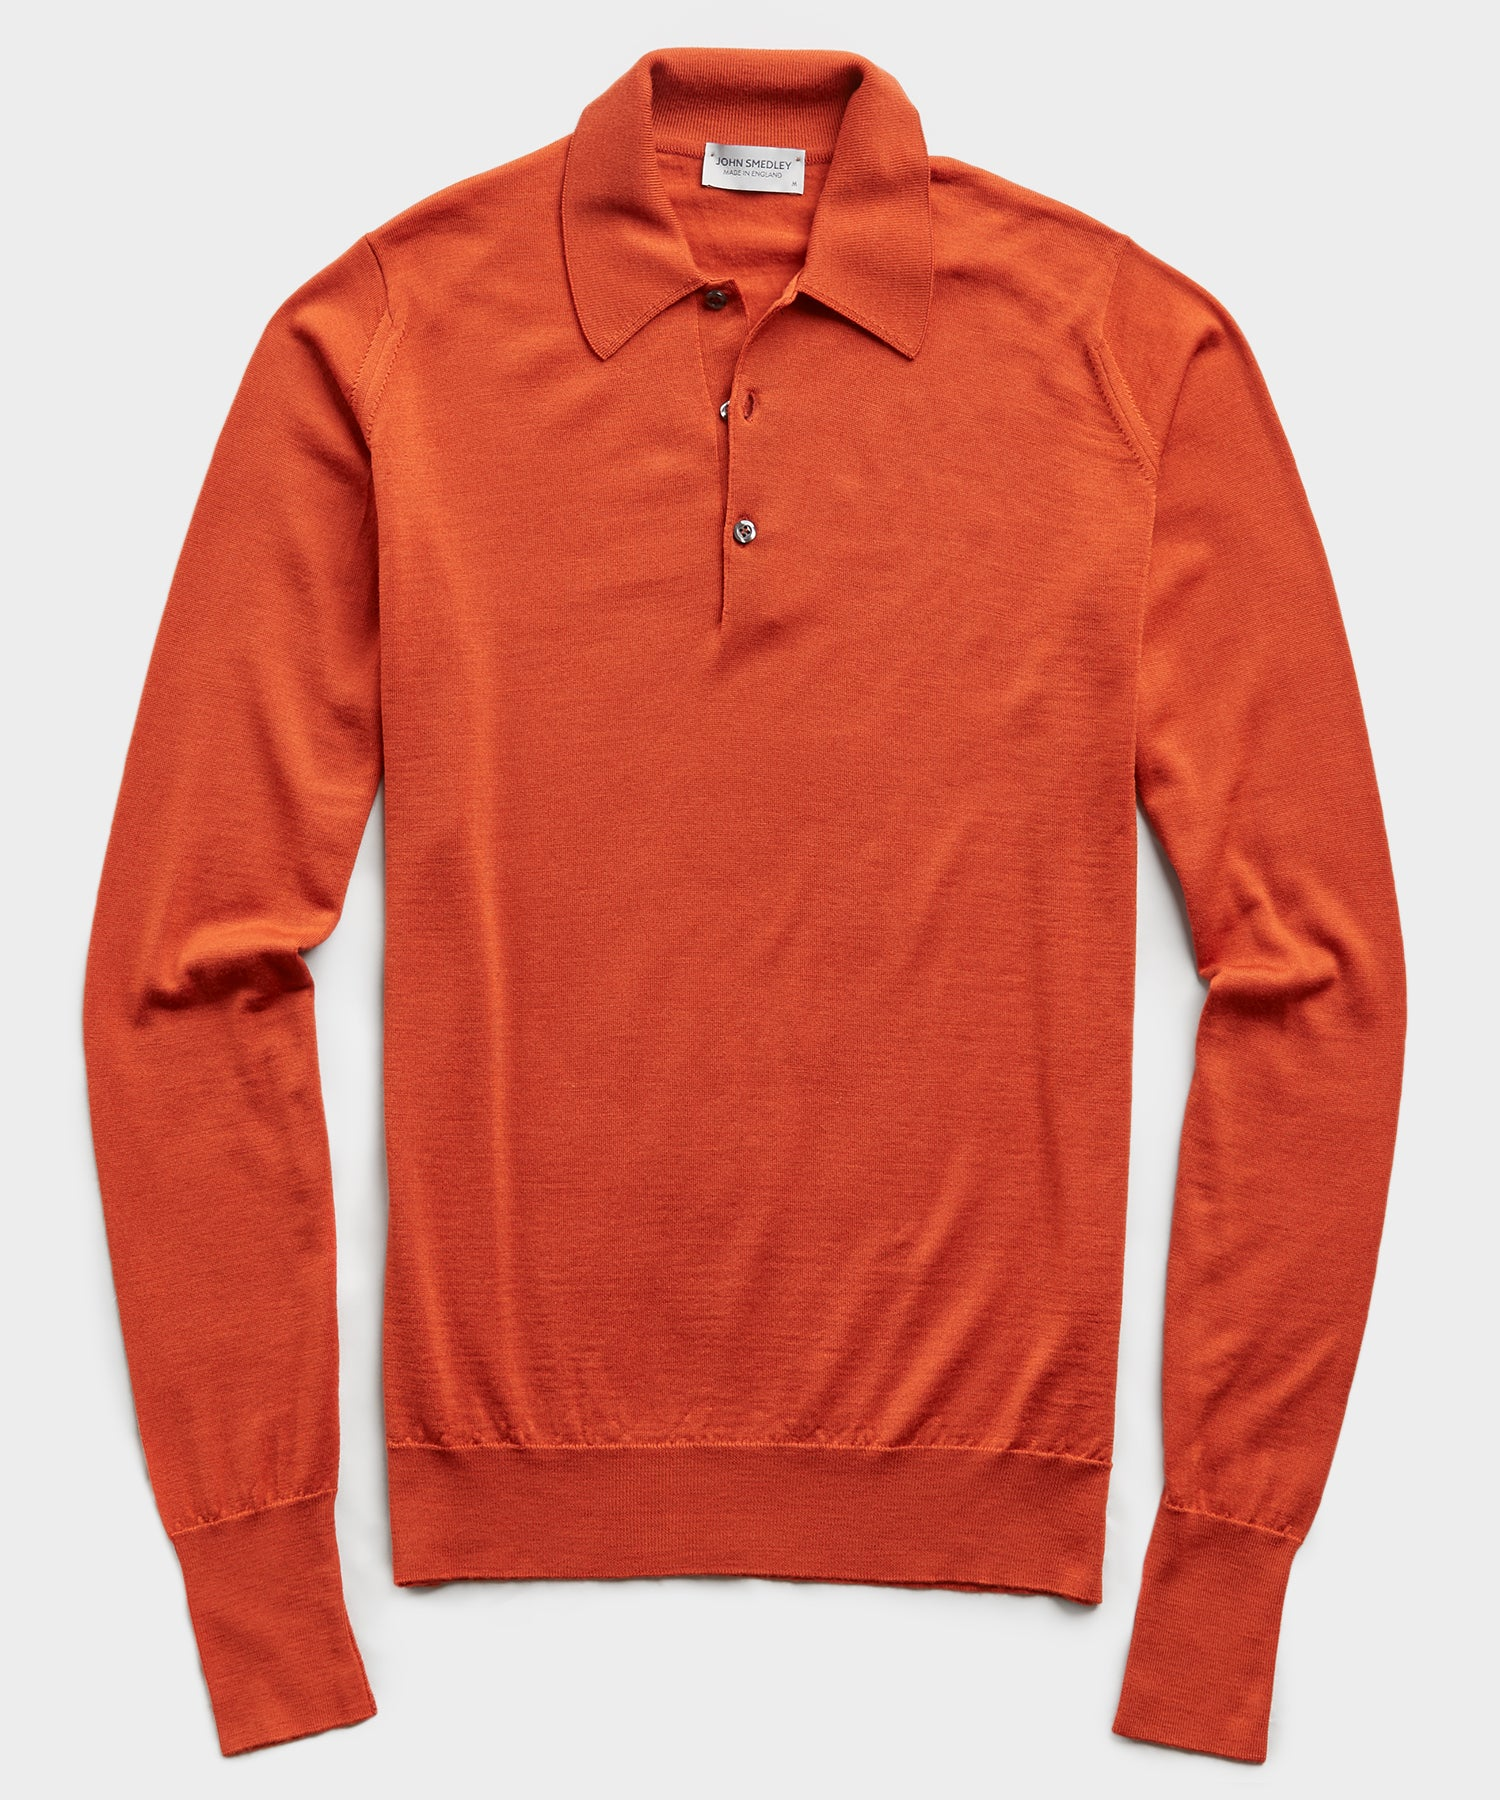 John Smedley Easy Fit Long Sleeve Polo Sweater in Orange